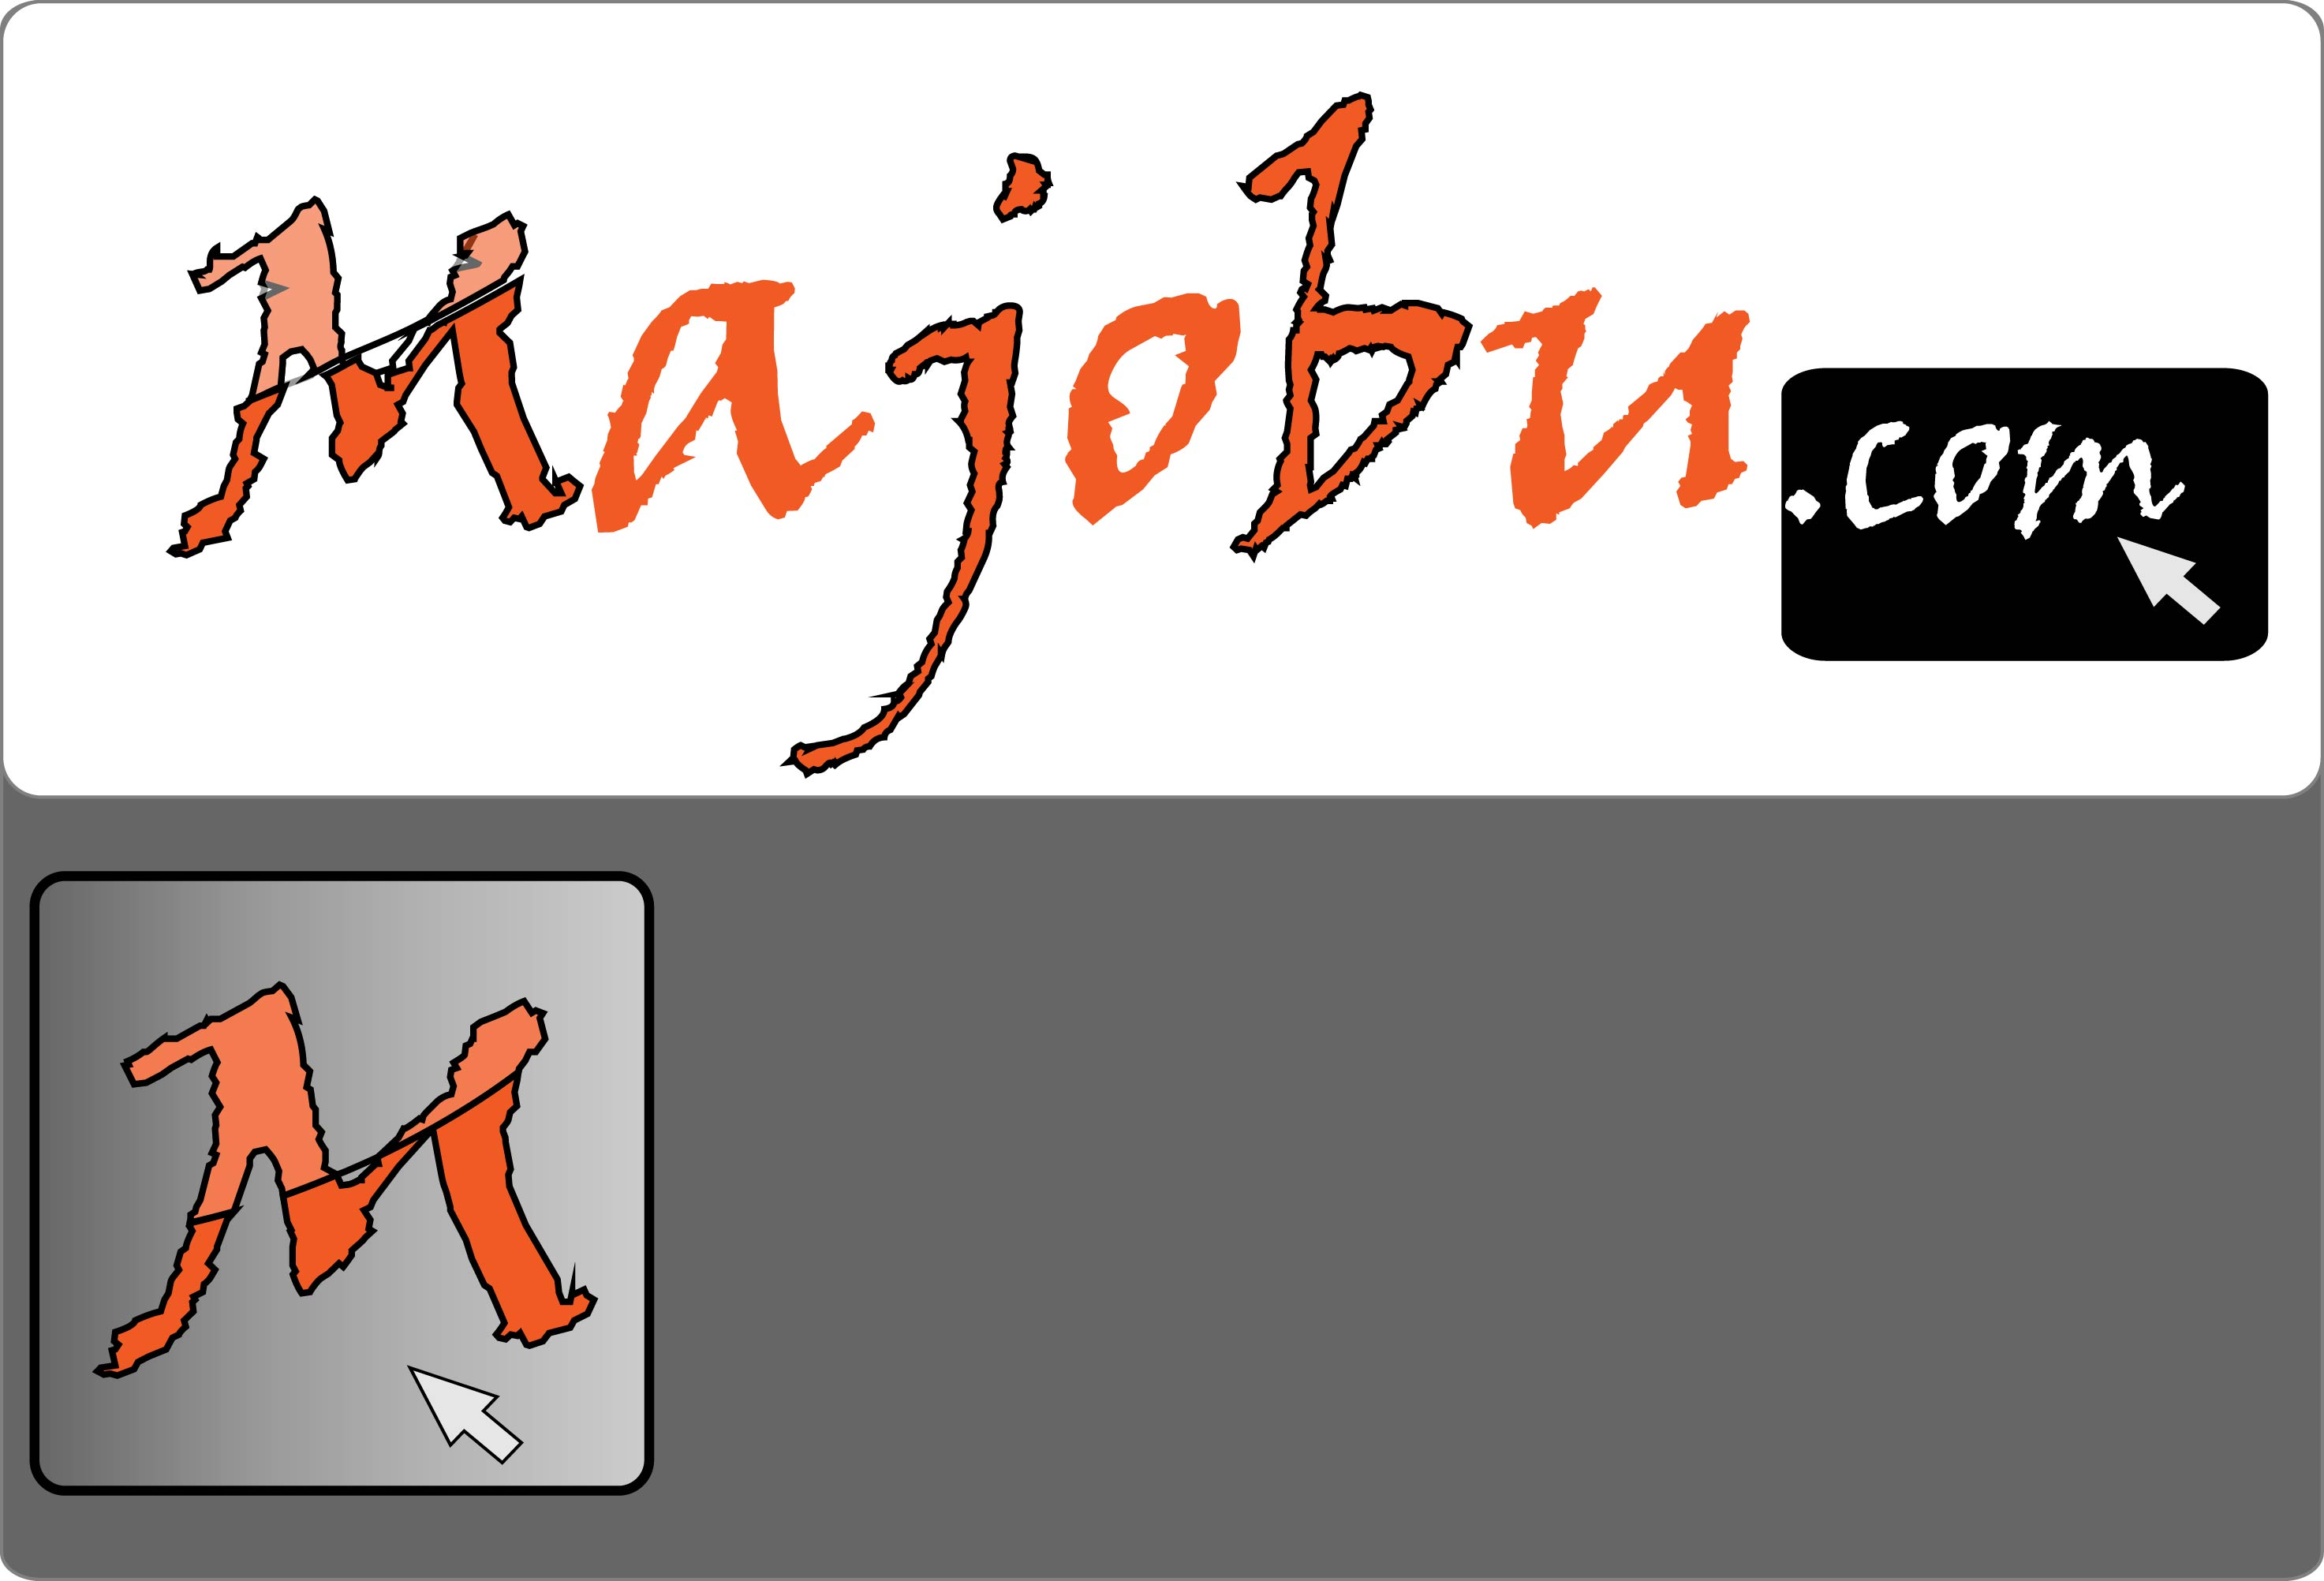 Logo Design by Andy McColm - Entry No. 65 in the Logo Design Contest Inspiring Logo Design for Majobu.